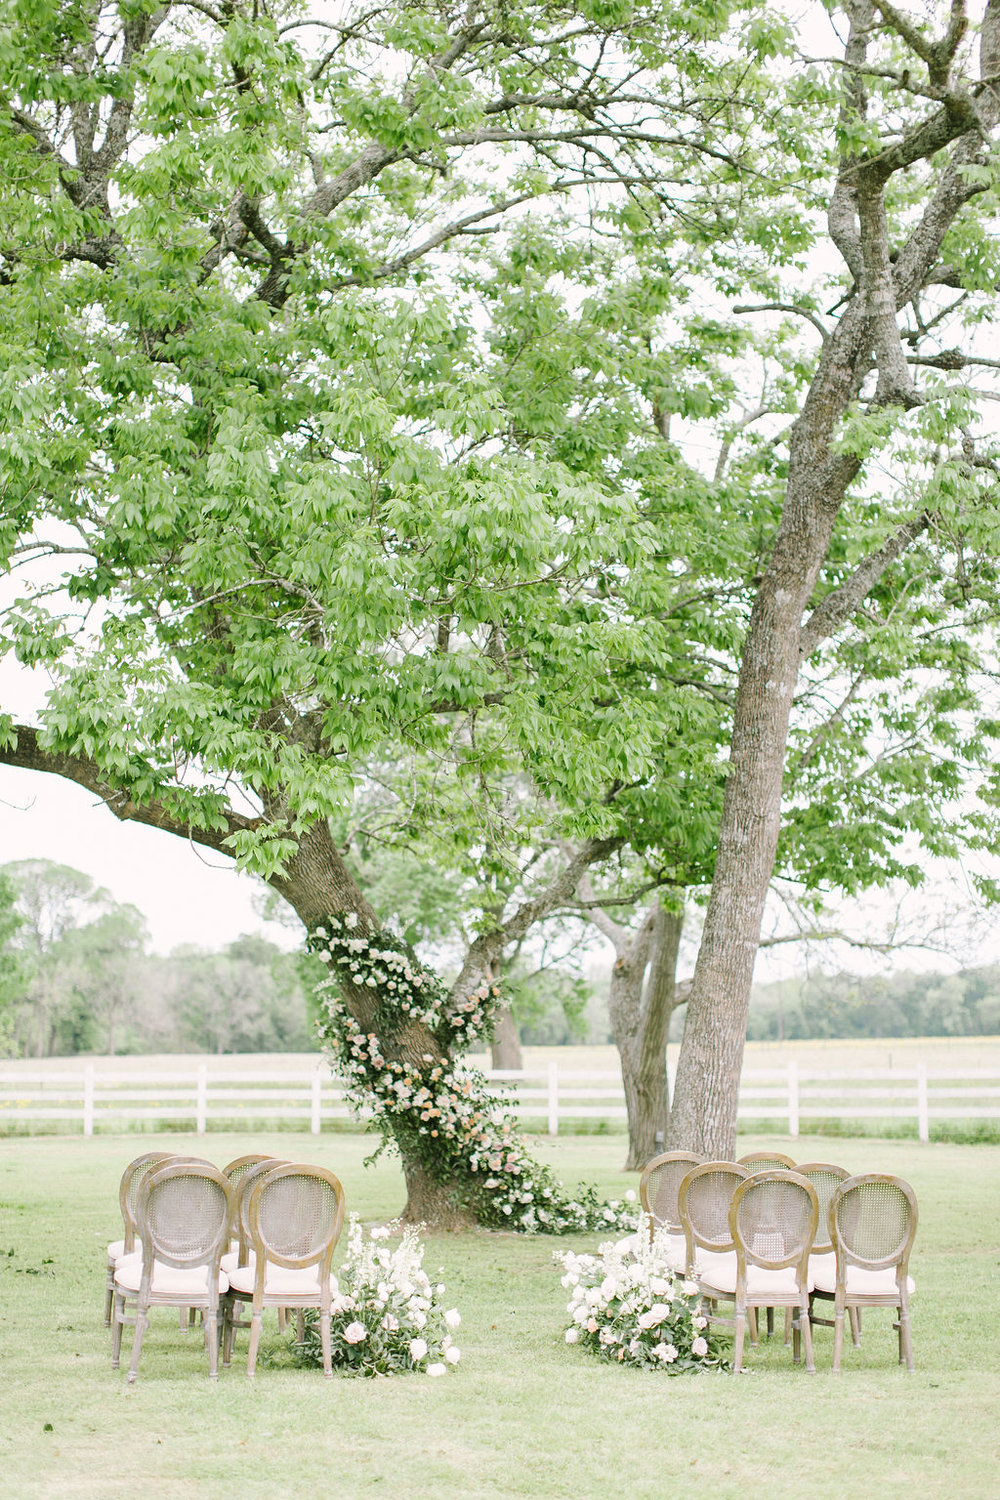 Tree installation and aisle flowers by Maxit Flower Design. Photographed by Kate Elizabeth. Styled by Shannon Ducker